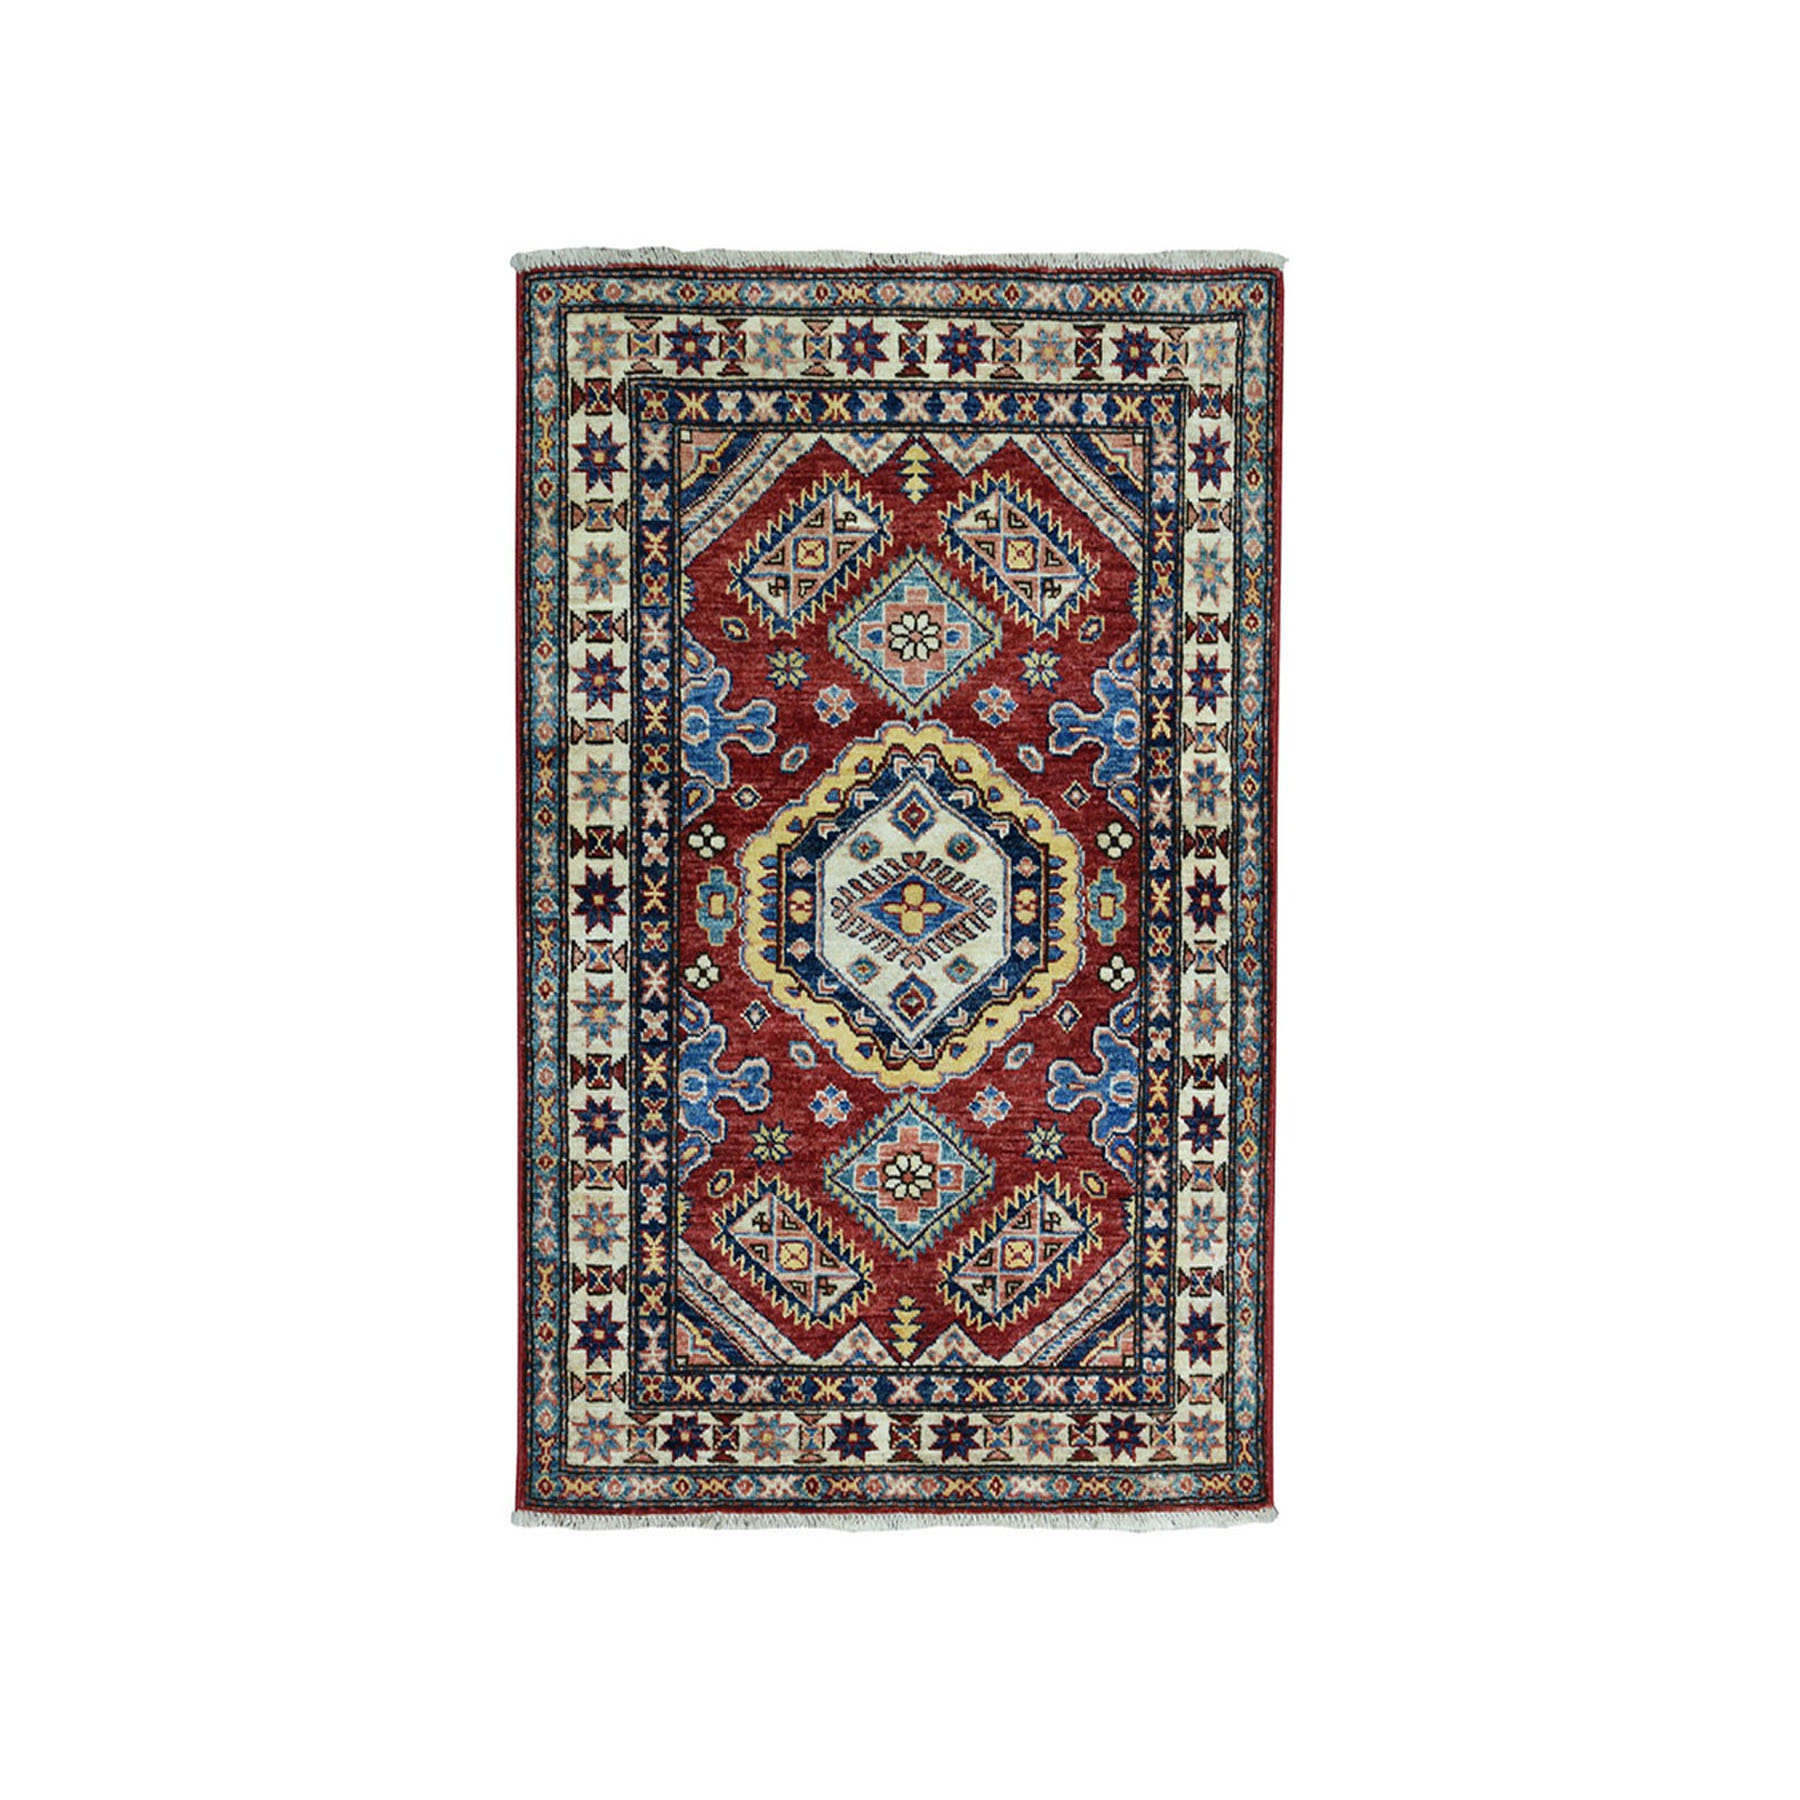 "2'9""x3'10"" Red Super Kazak Pure Wool Geometric Design Hand-Knotted Oriental Rug"